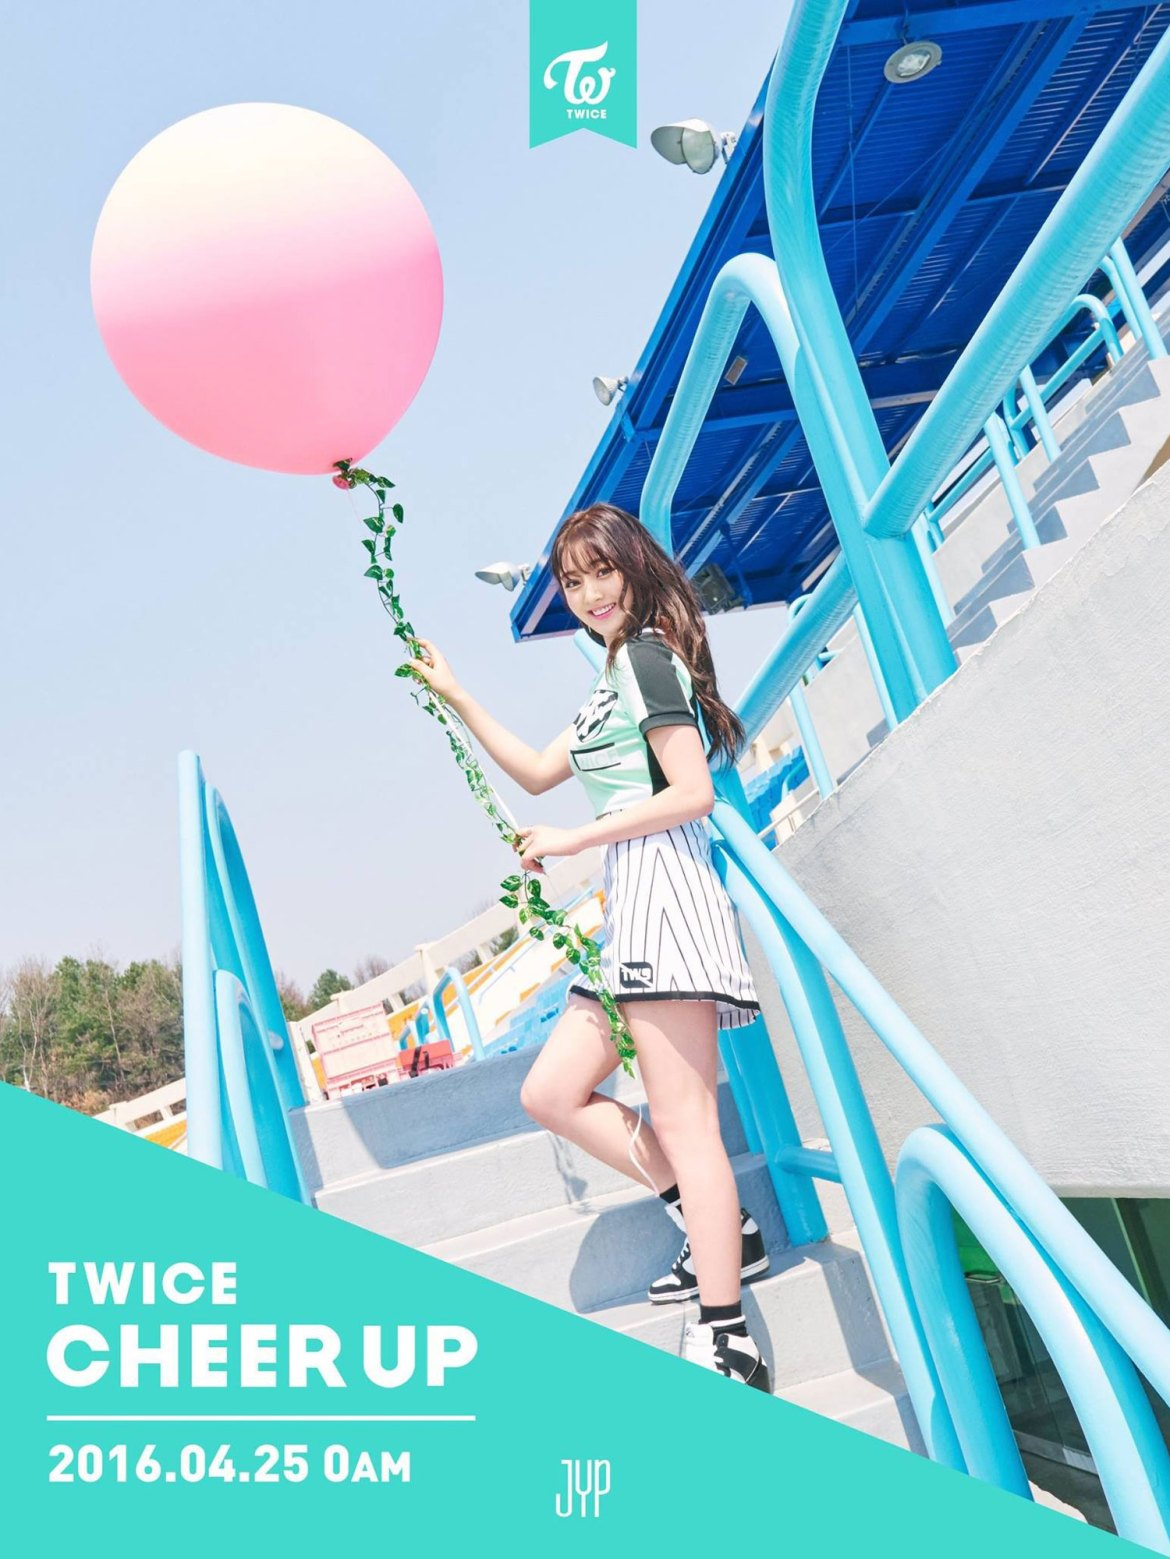 TWICE Jihyo Cheer Up album concept photo